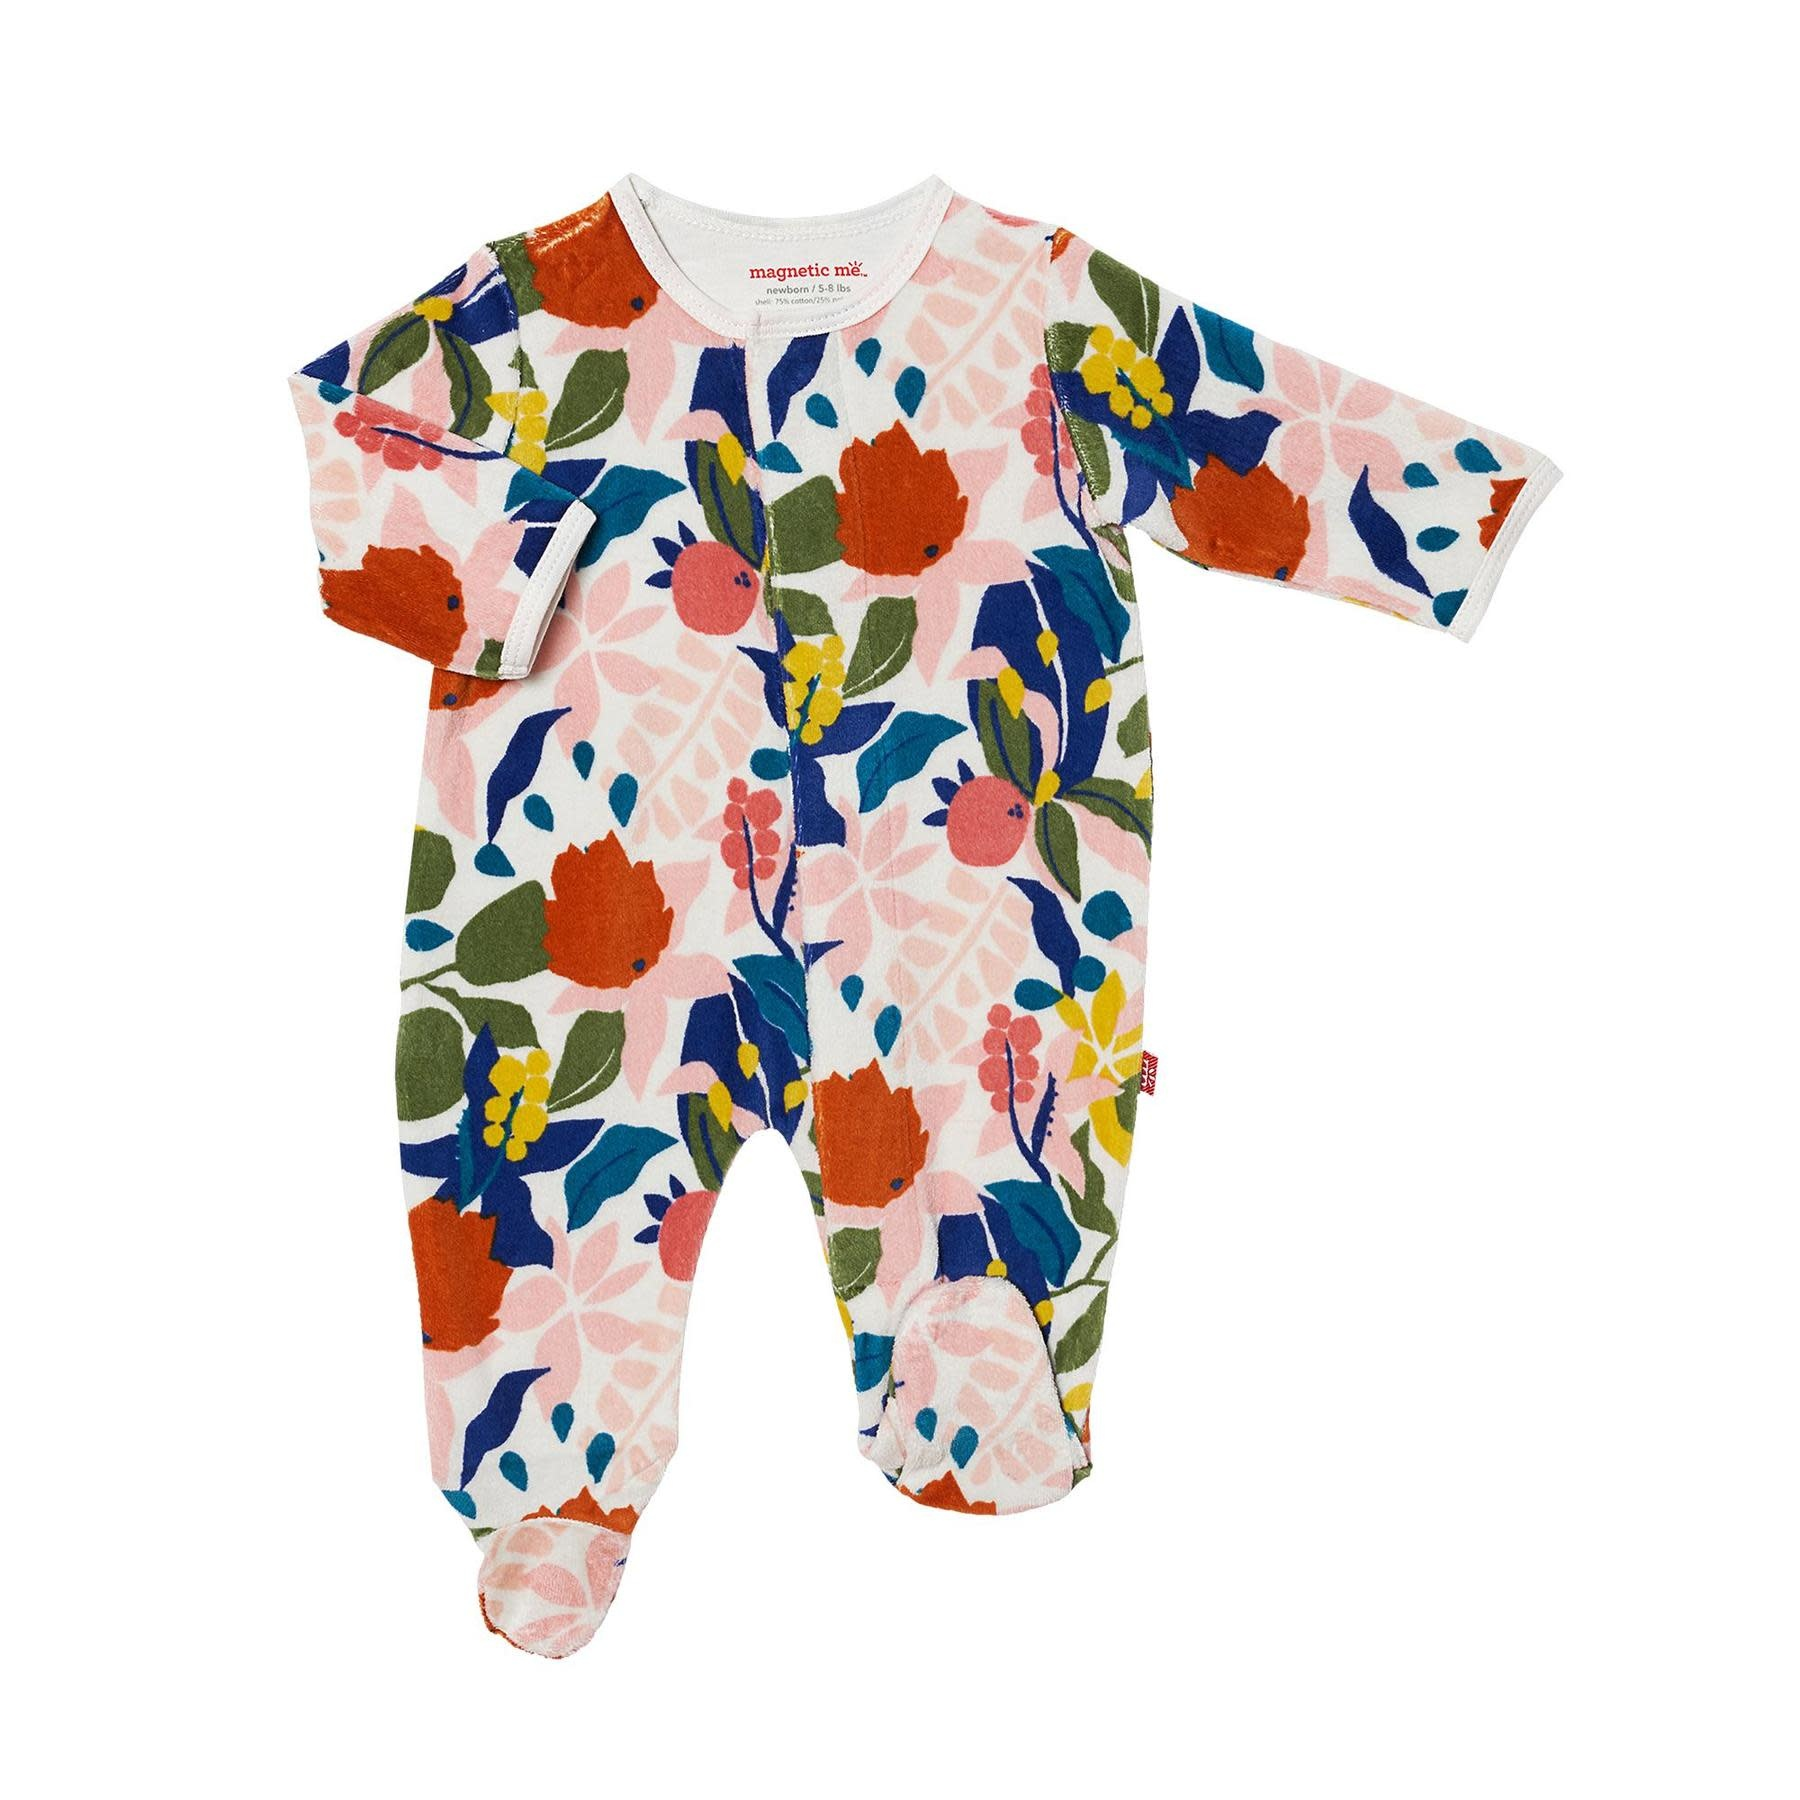 Magnificent Baby Magnetic Me Rayleigh Velour Magnetic Footie